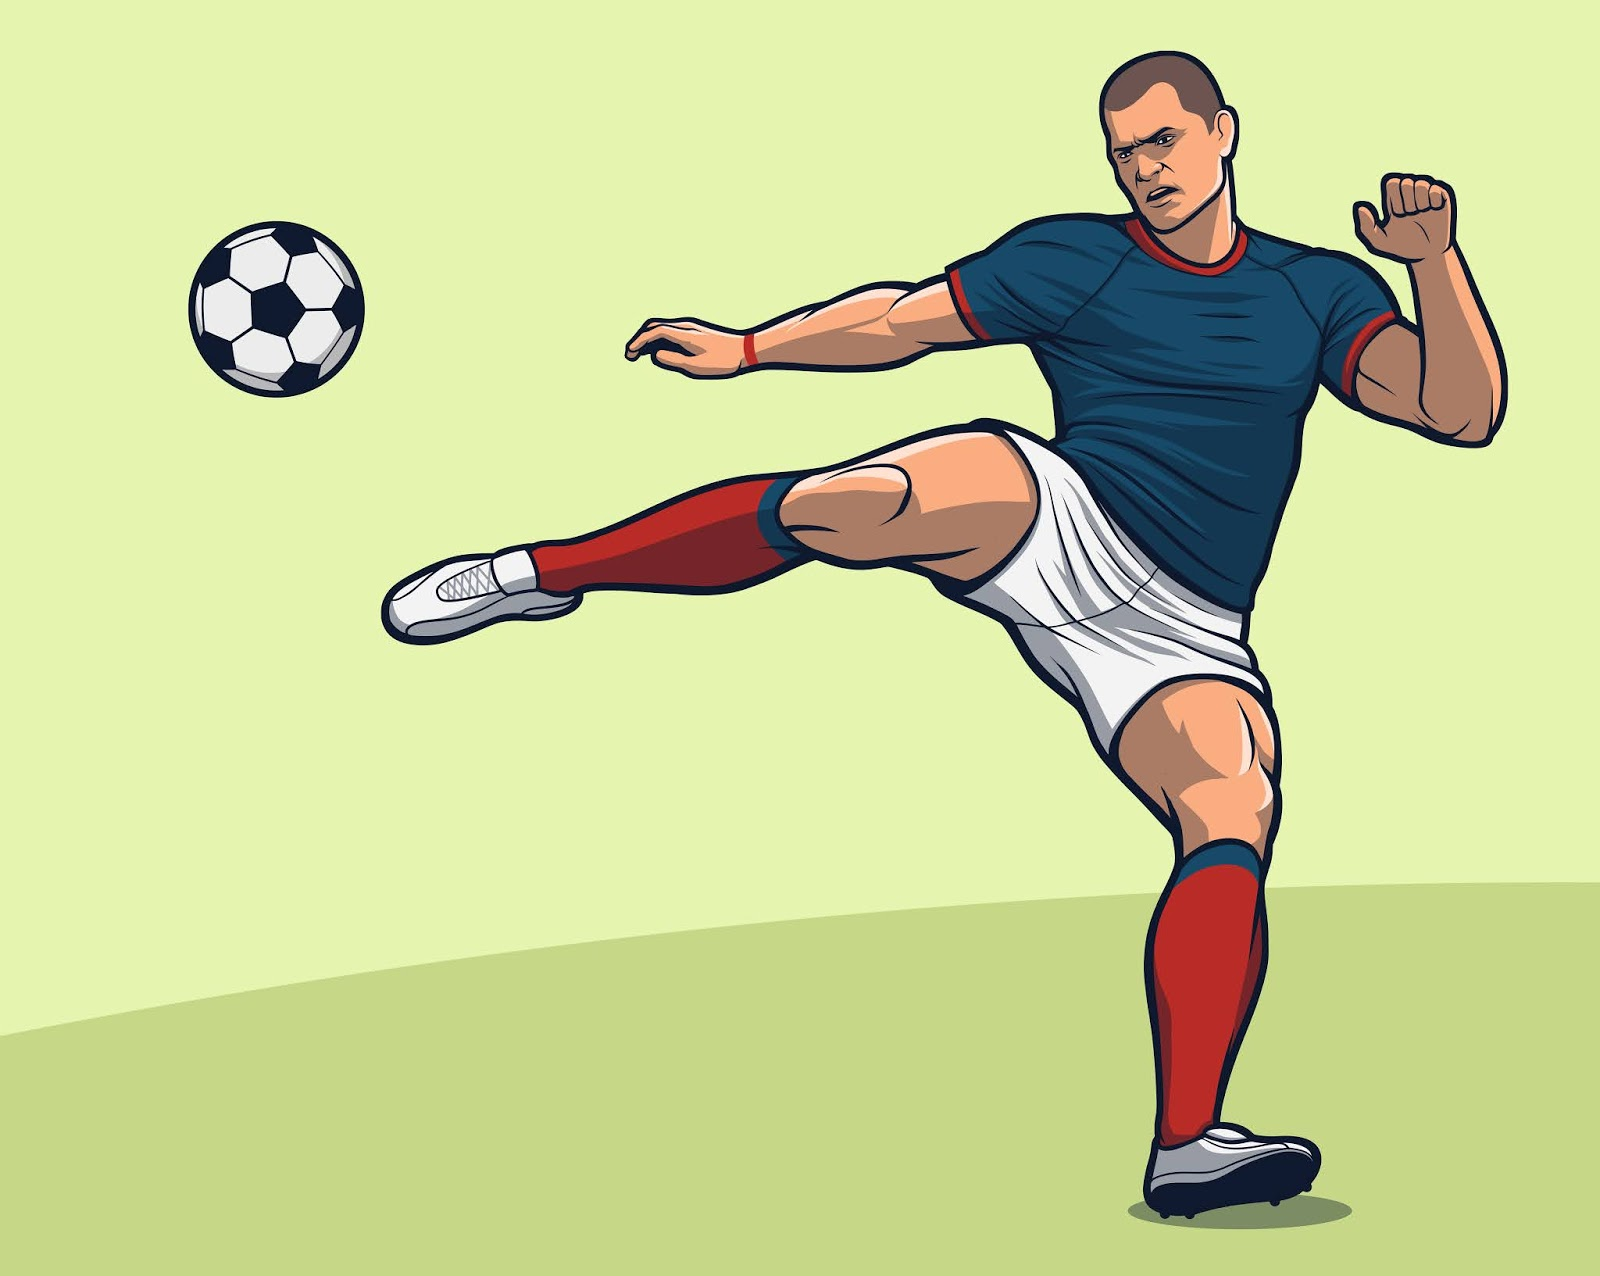 Soccer Player Volley Kick Free Download Vector CDR, AI, EPS and PNG Formats